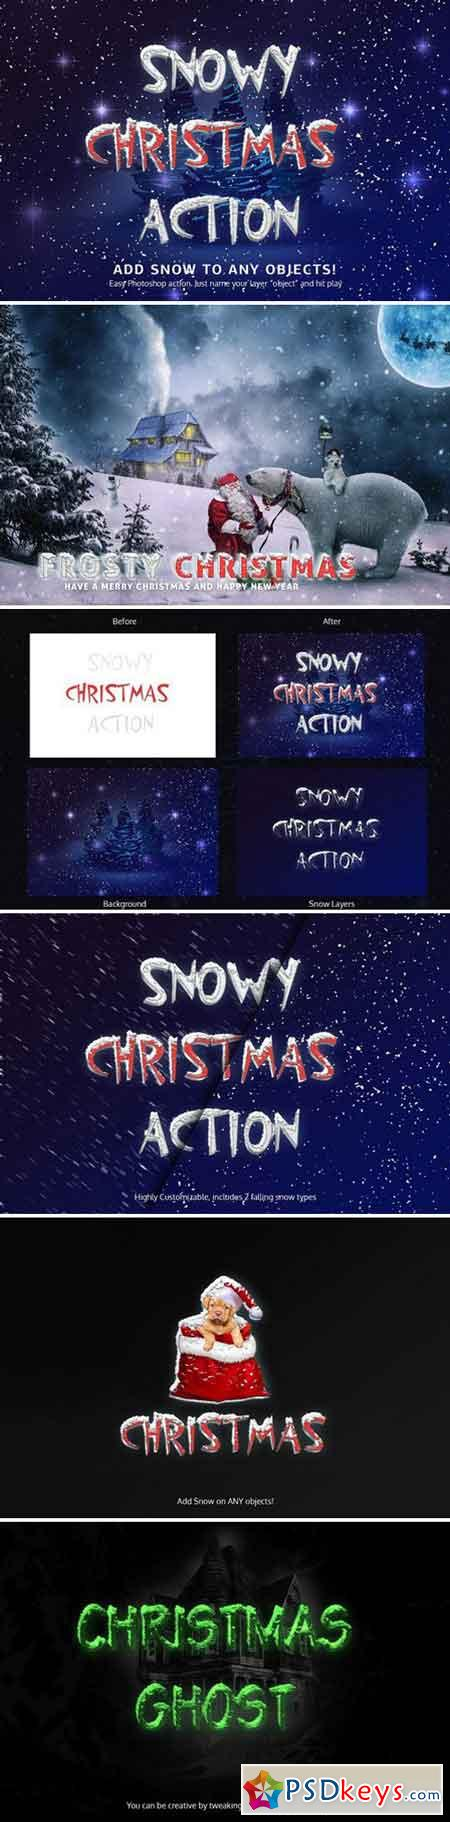 Snowy Christmas Action 2153889